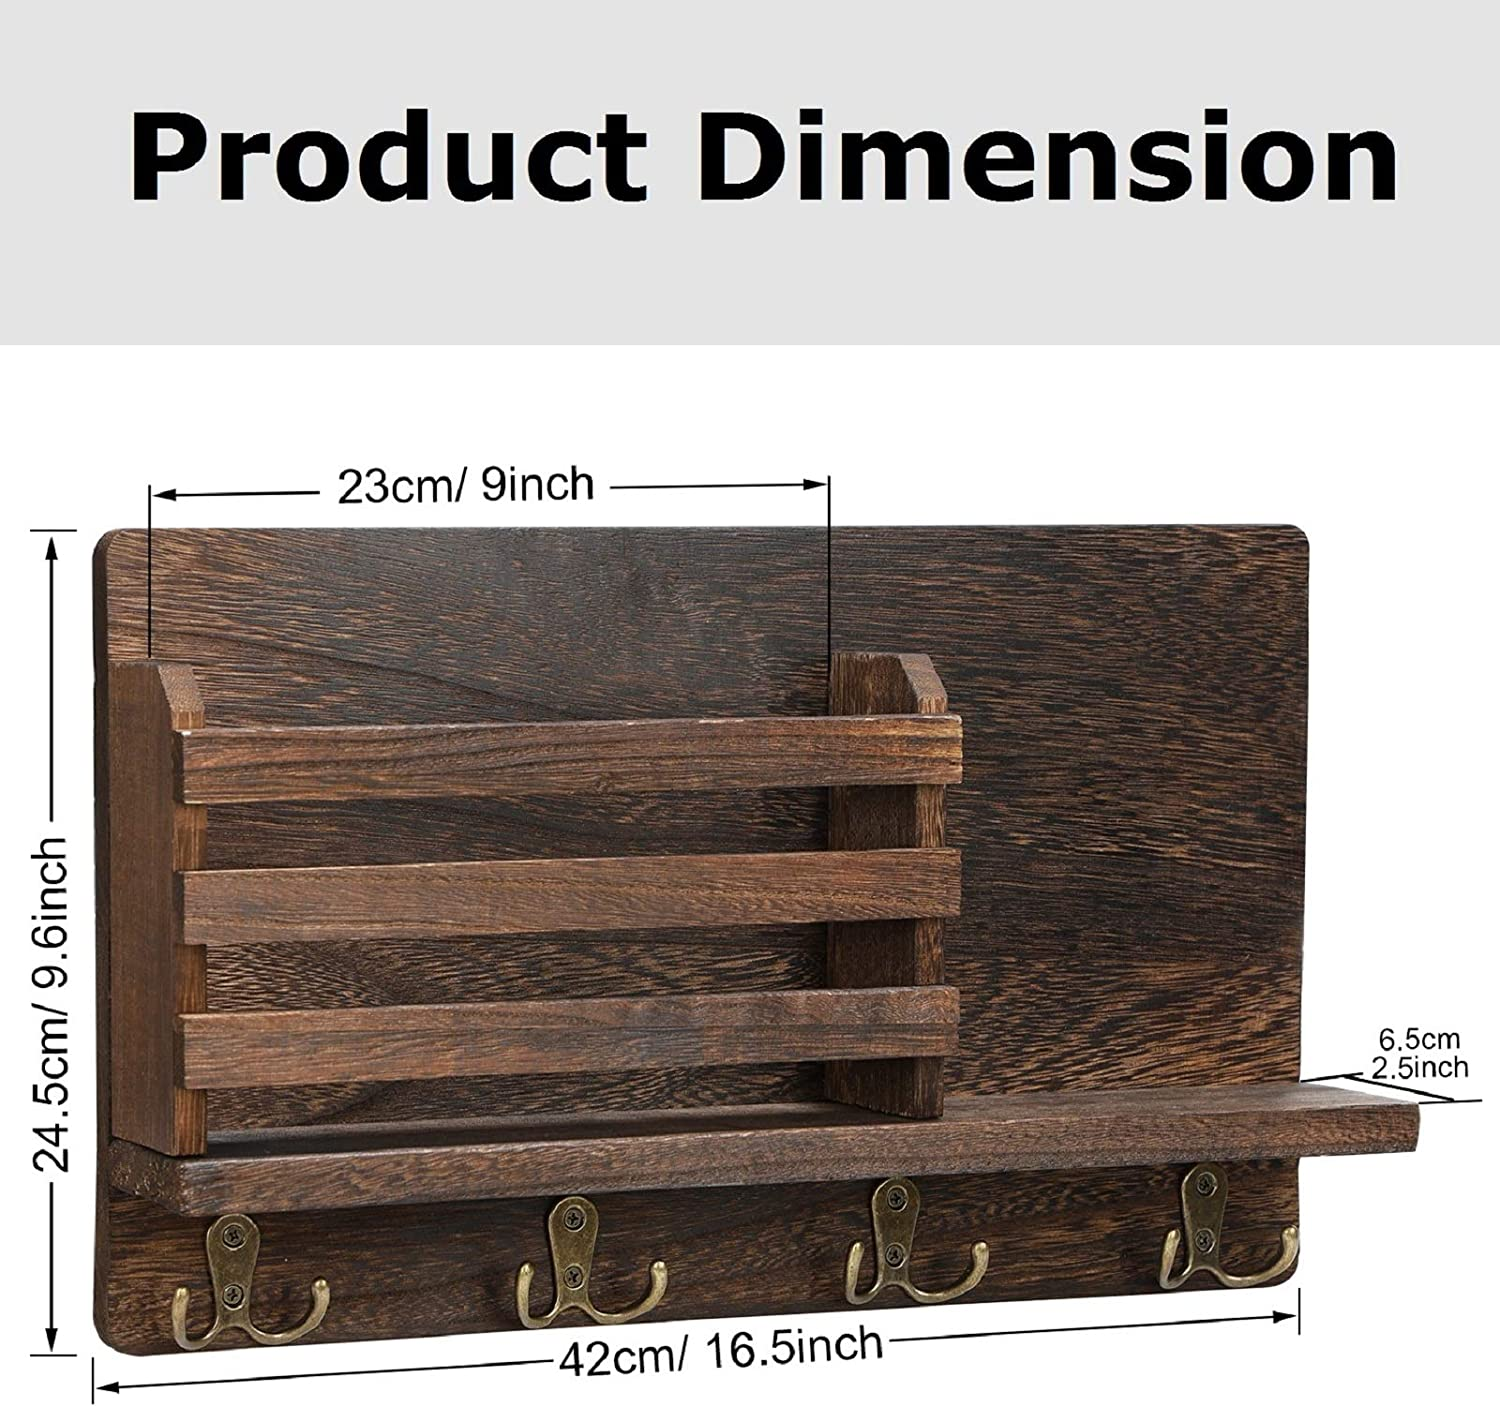 Office Floating Shelves for Coat Rack Key Storage Rack for Kitchen Entryway Mail Envelope Organizer Bathroom Wall Mounted Key Holder Wood Mail Holder with 4 Double Key Hooks Rustic Mail Sorter